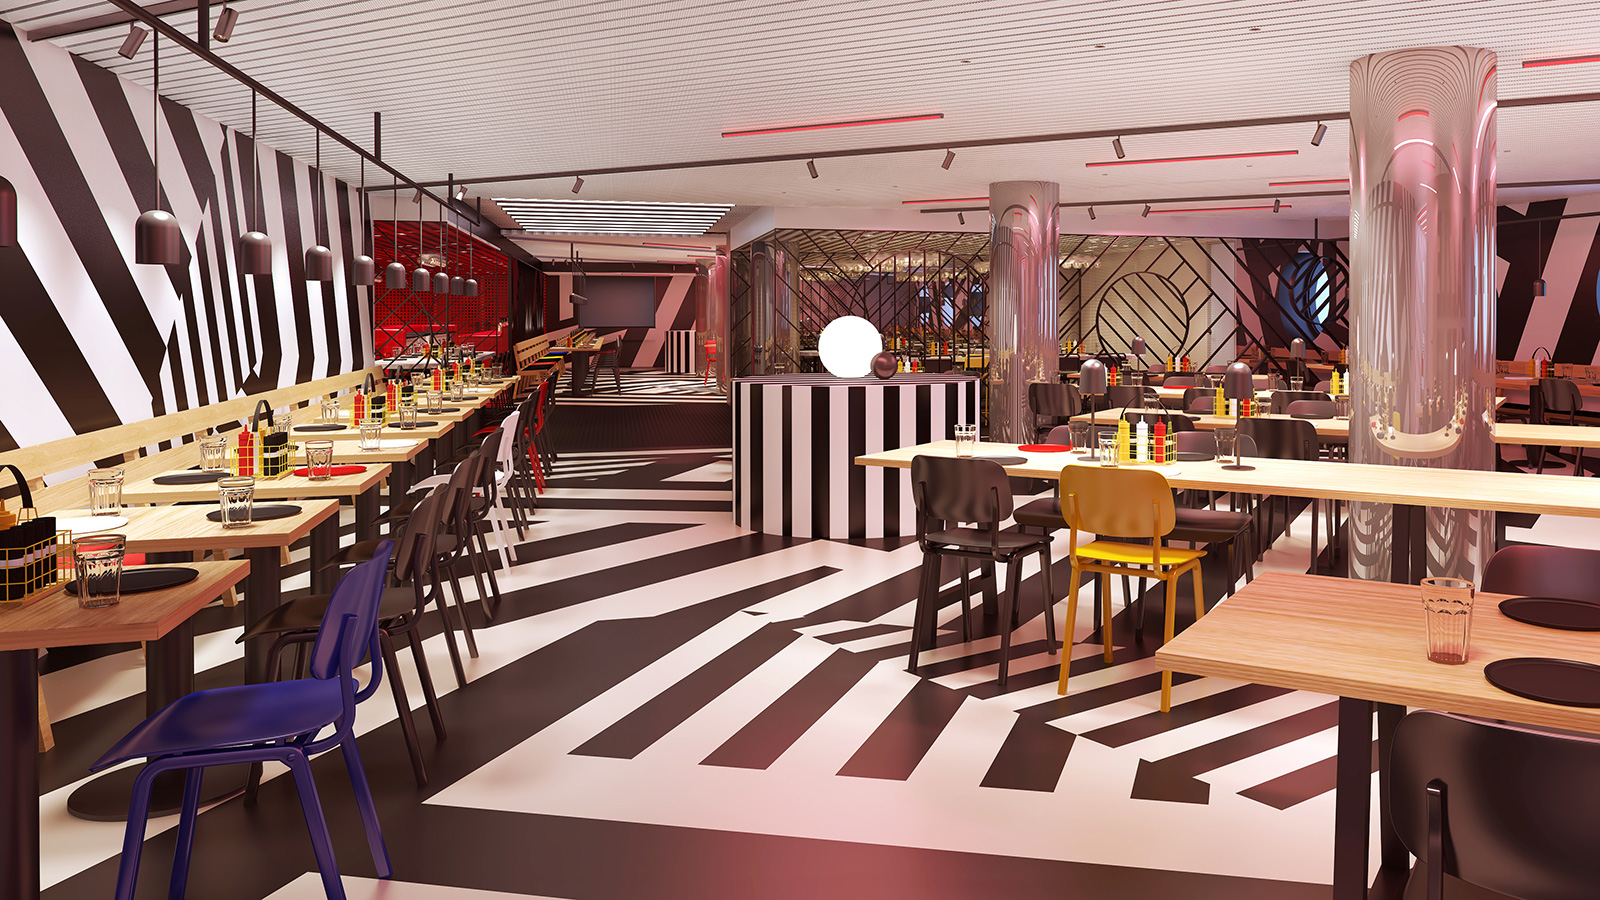 Razzle Dazzle is a restaurant we can't wait to see…vegetarian options  and  drag queens?! What more could you want?